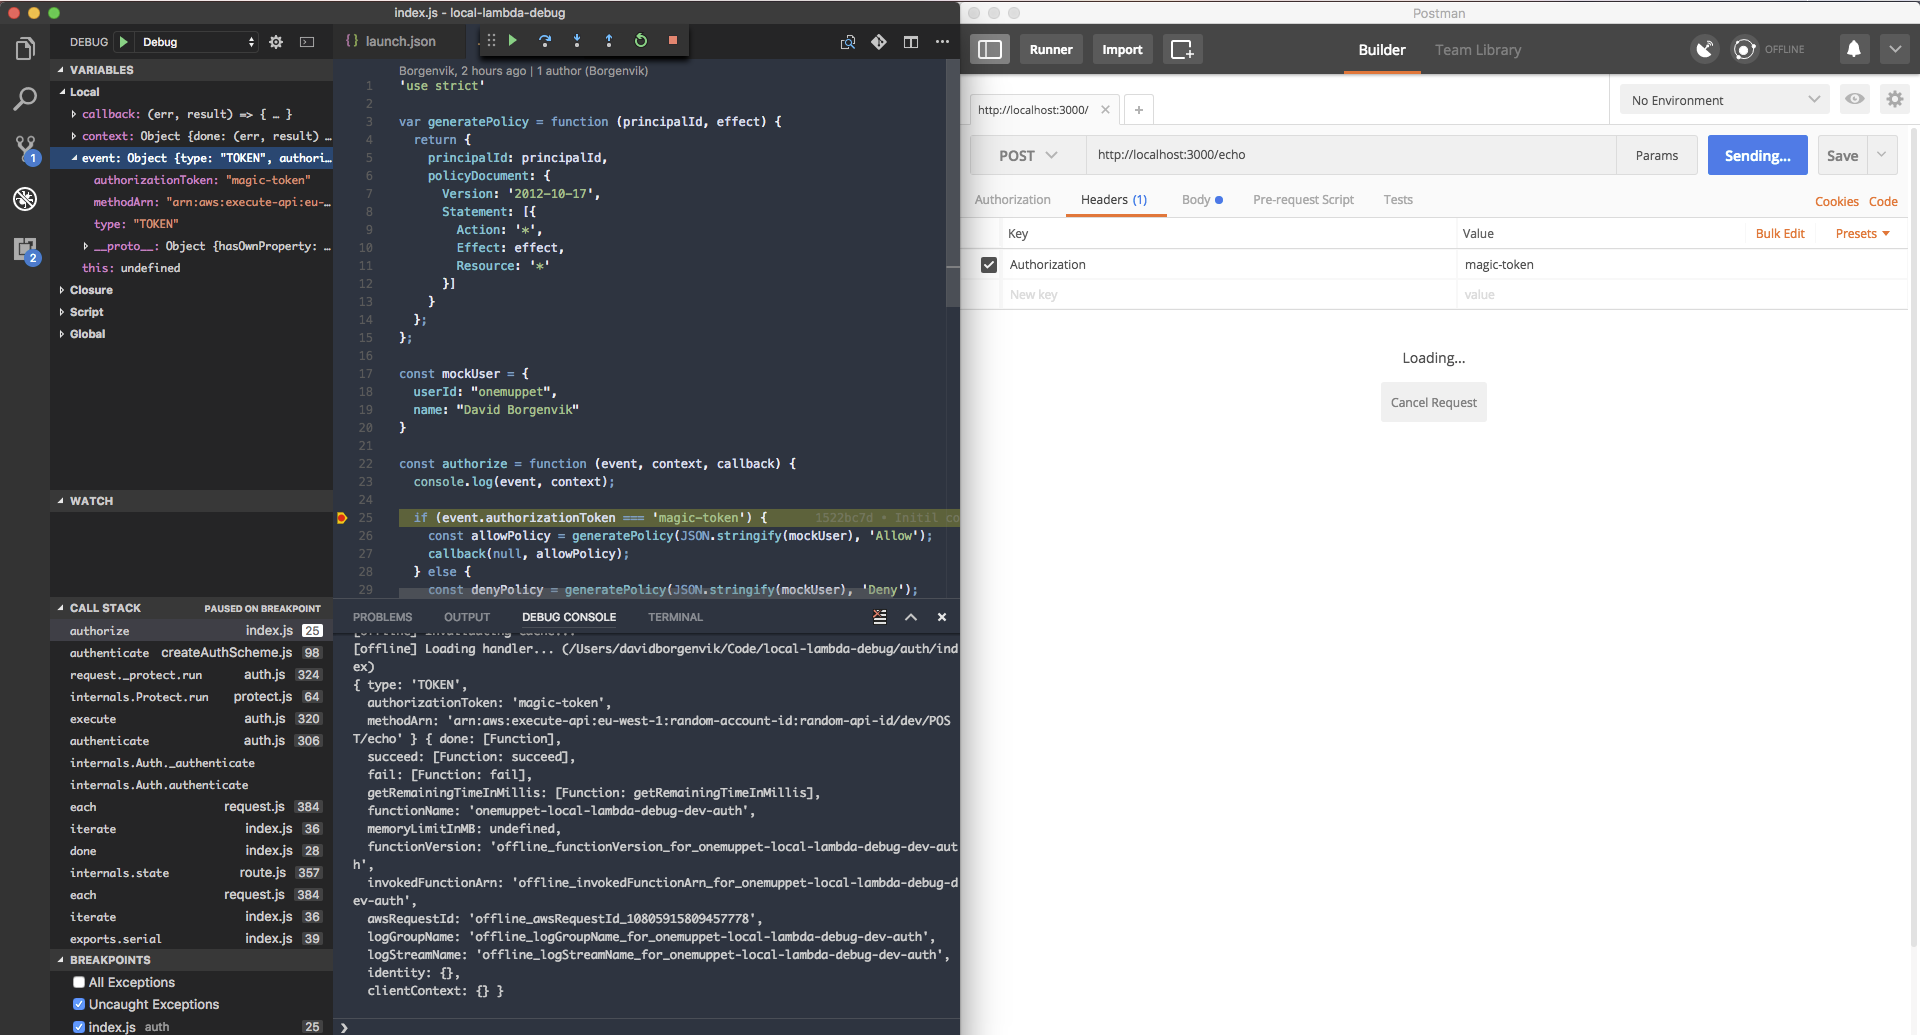 Debugging lambda functions locally in vscode with actual